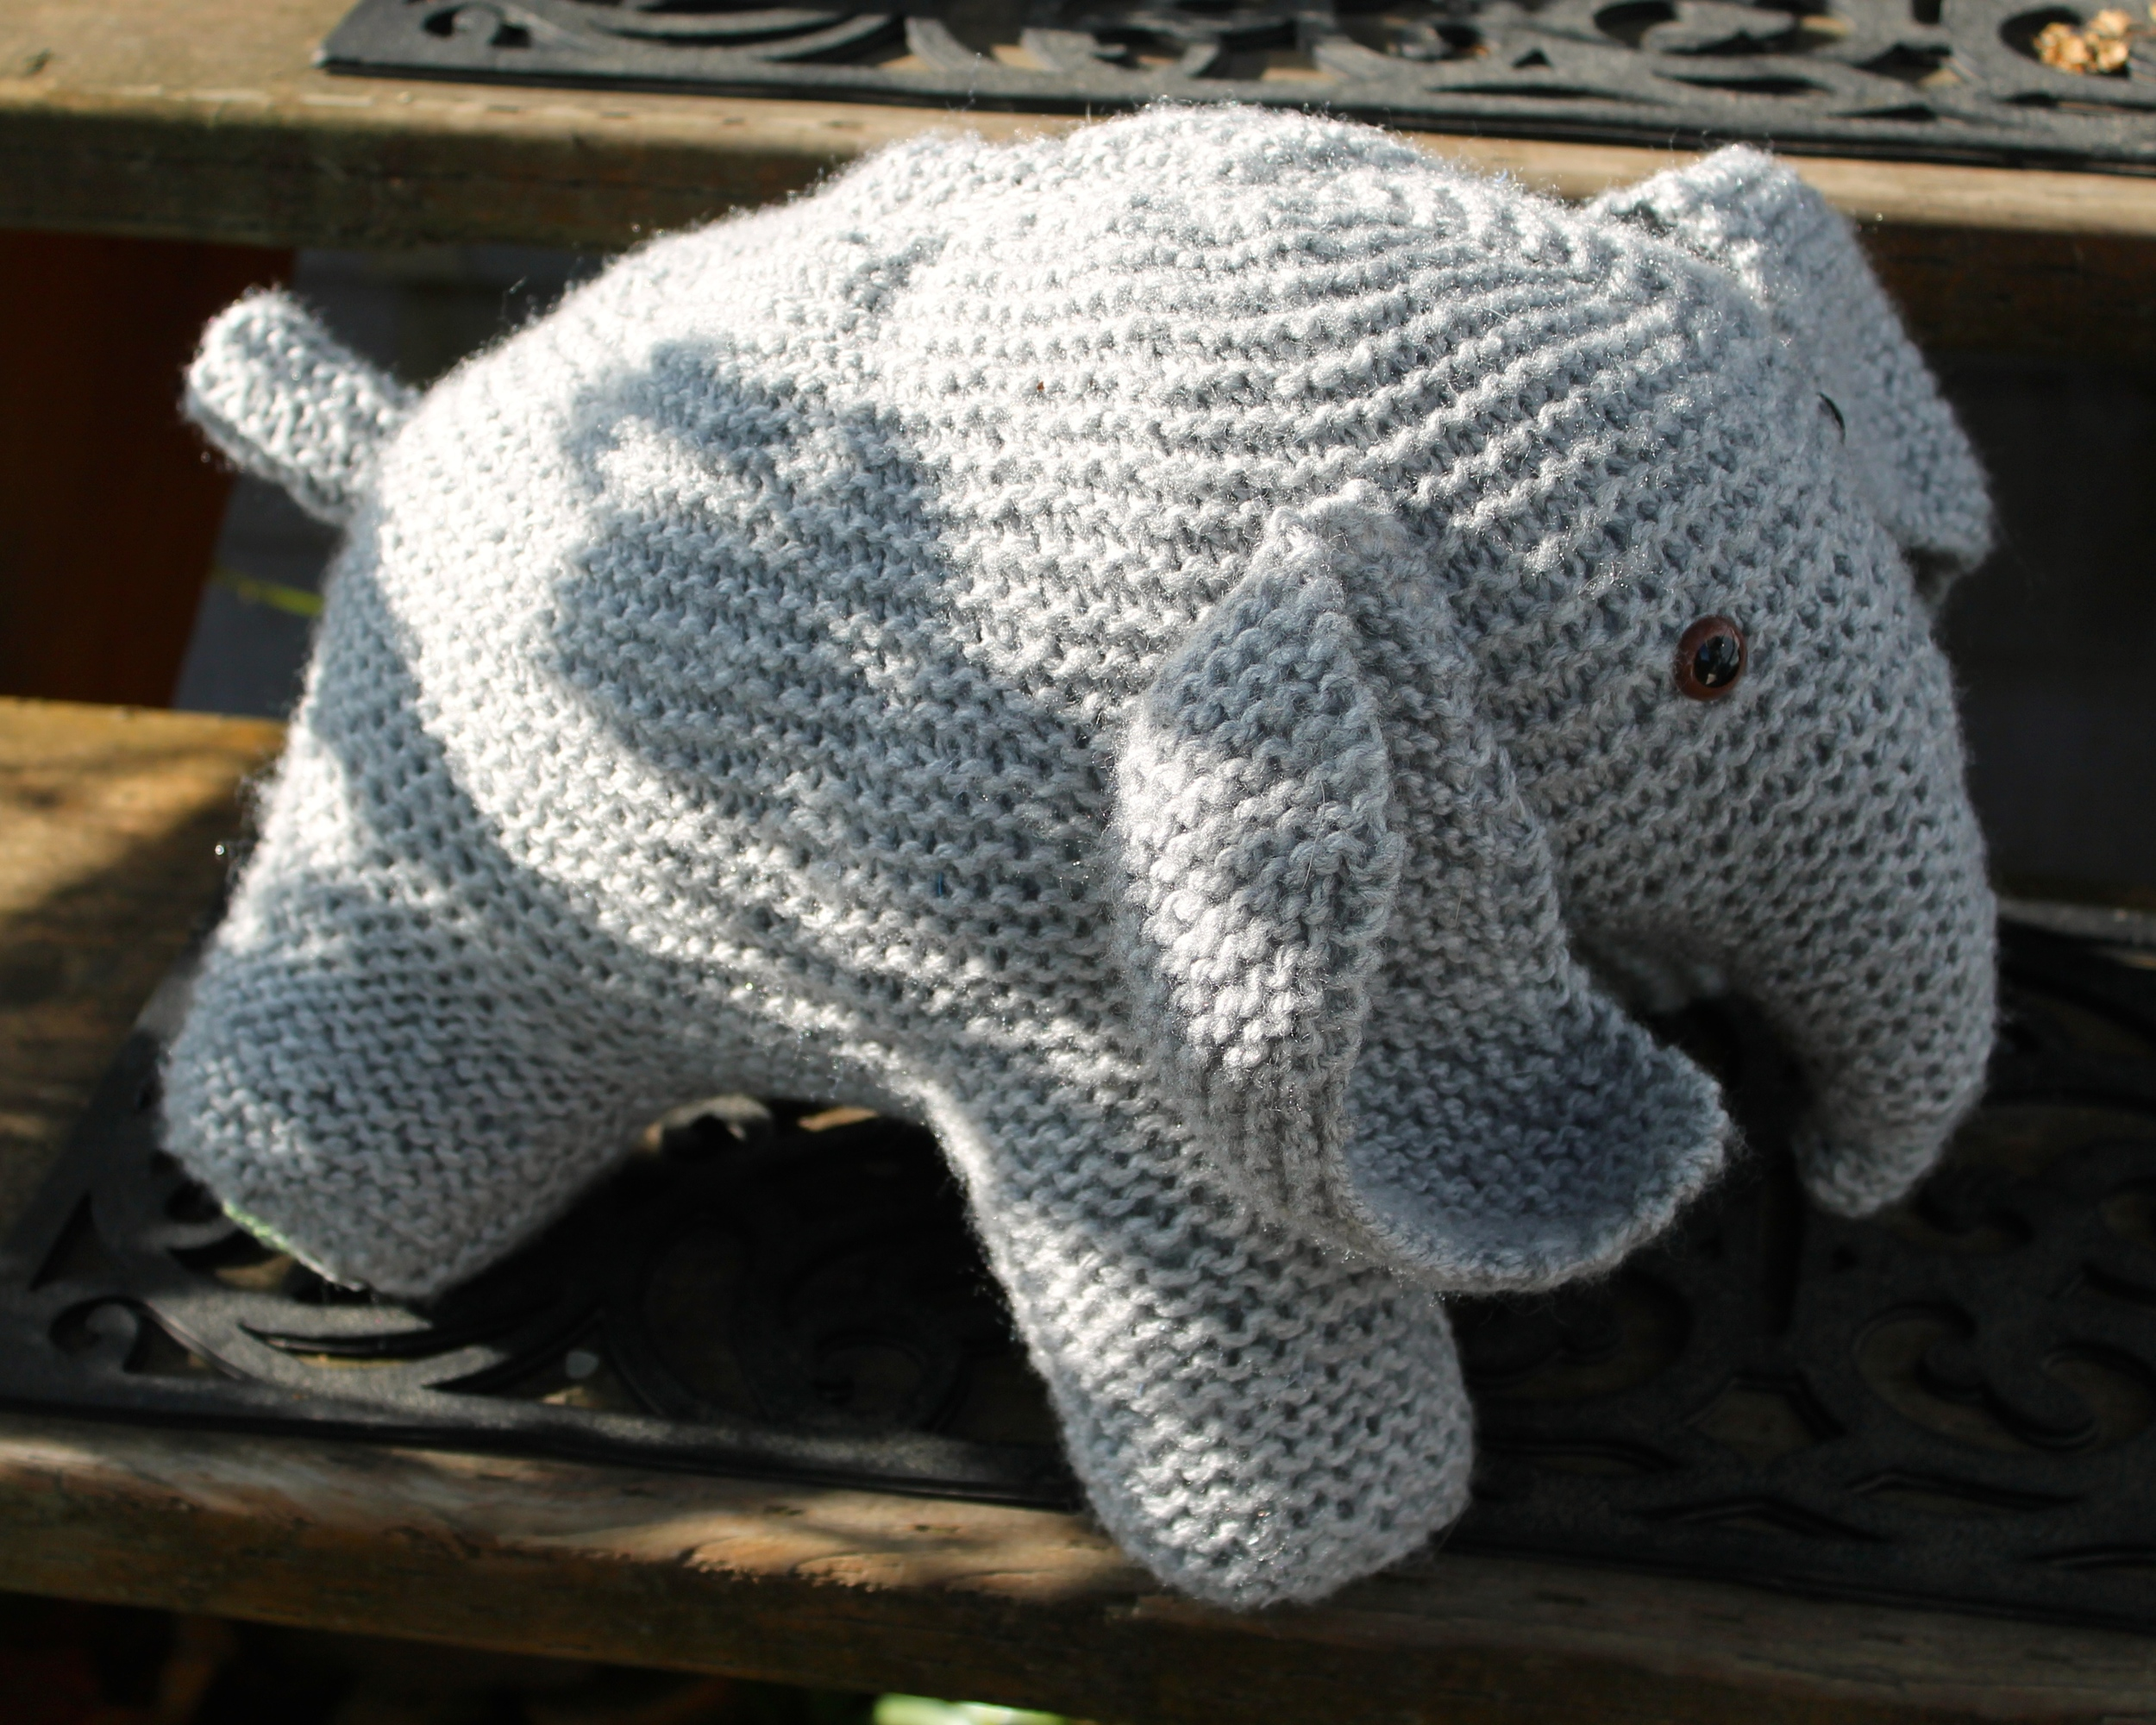 Gray knit stuffed elephant with brown glass eyes, sitting in on porch steps